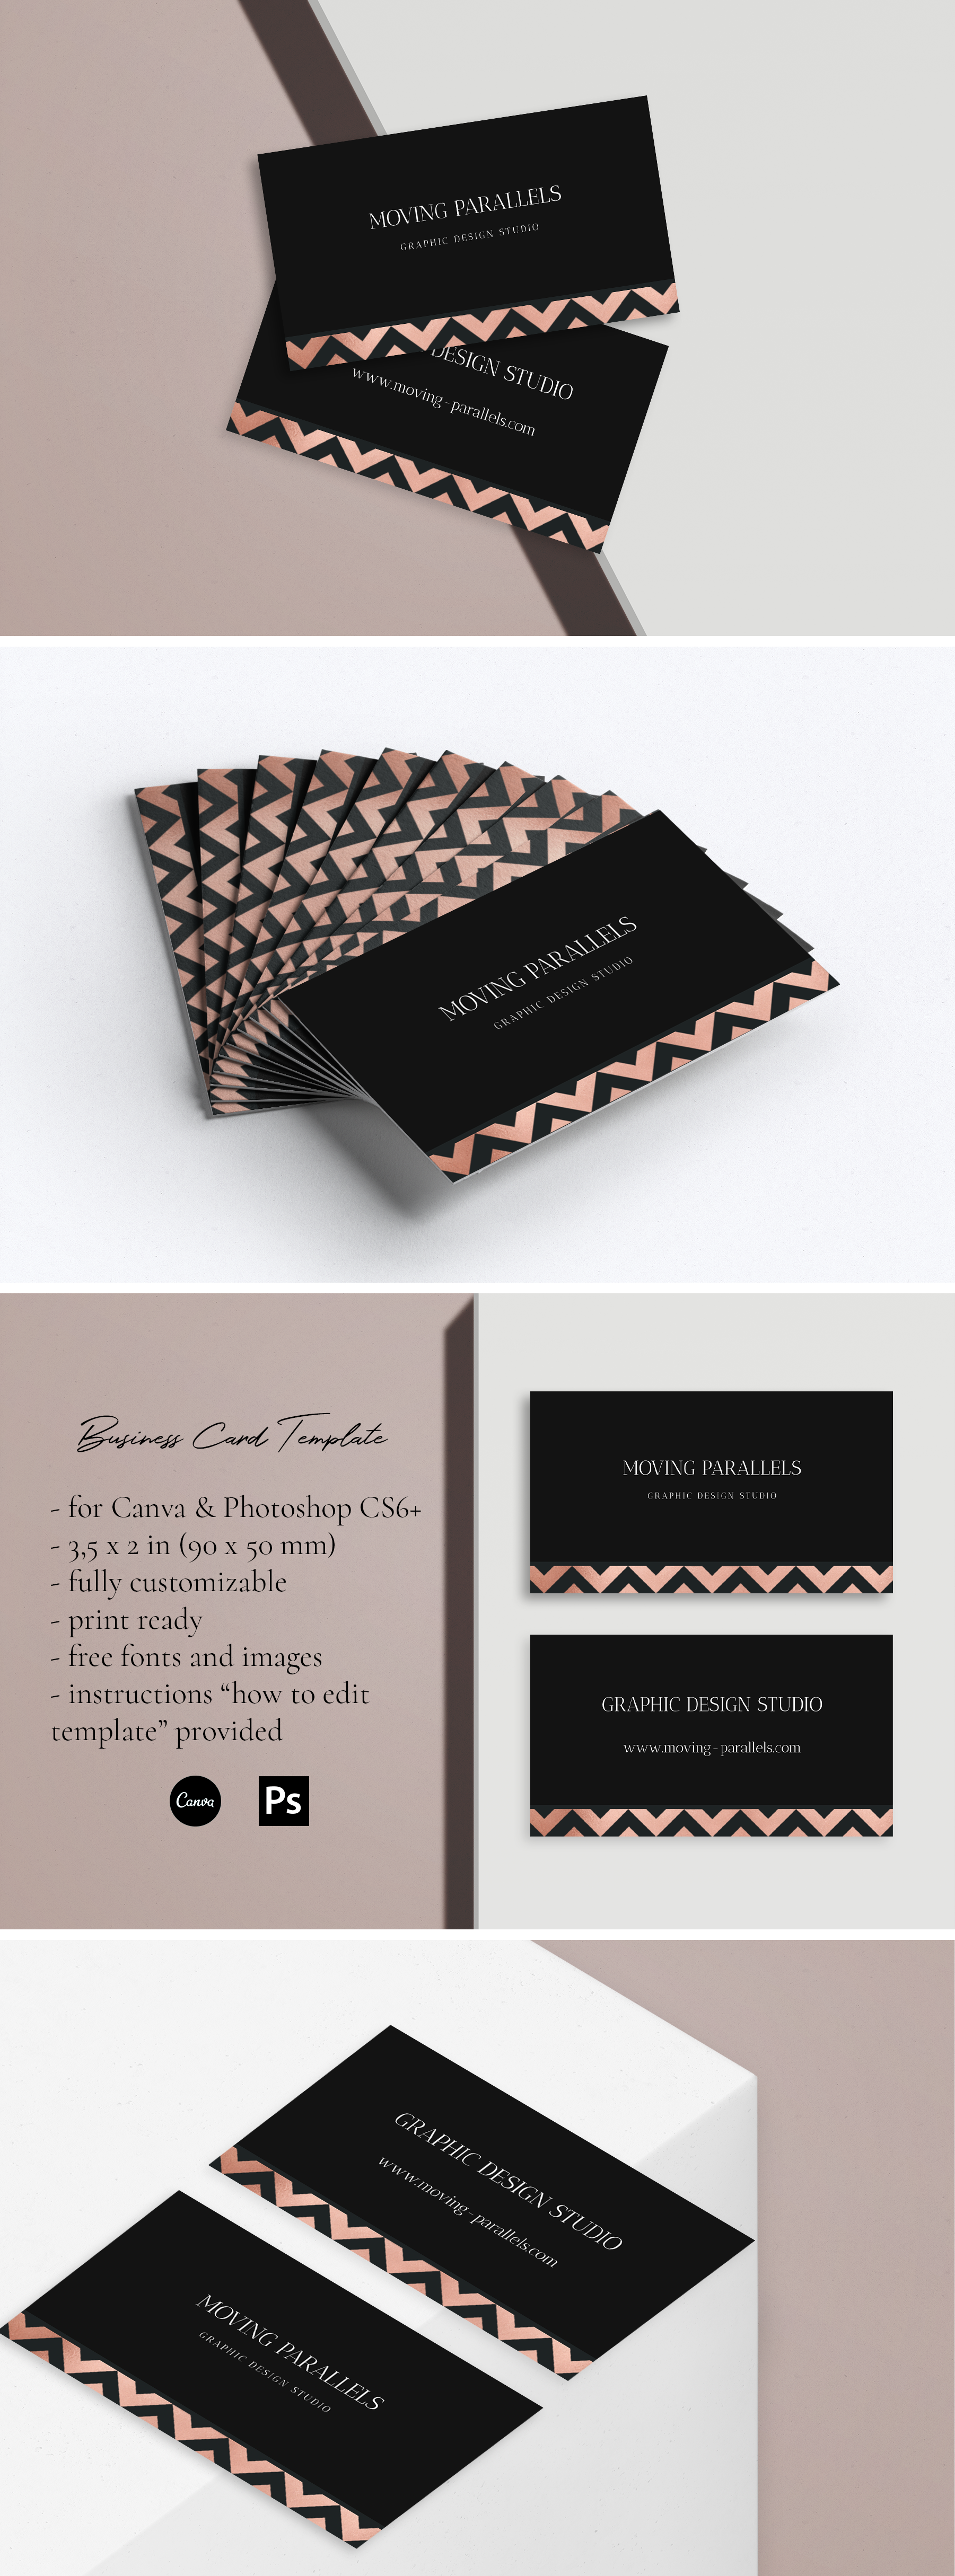 Canva Rose Gold White Black Marble Glitter Foil Business Etsy In 2021 Classy Business Cards Foil Business Cards Clever Business Cards